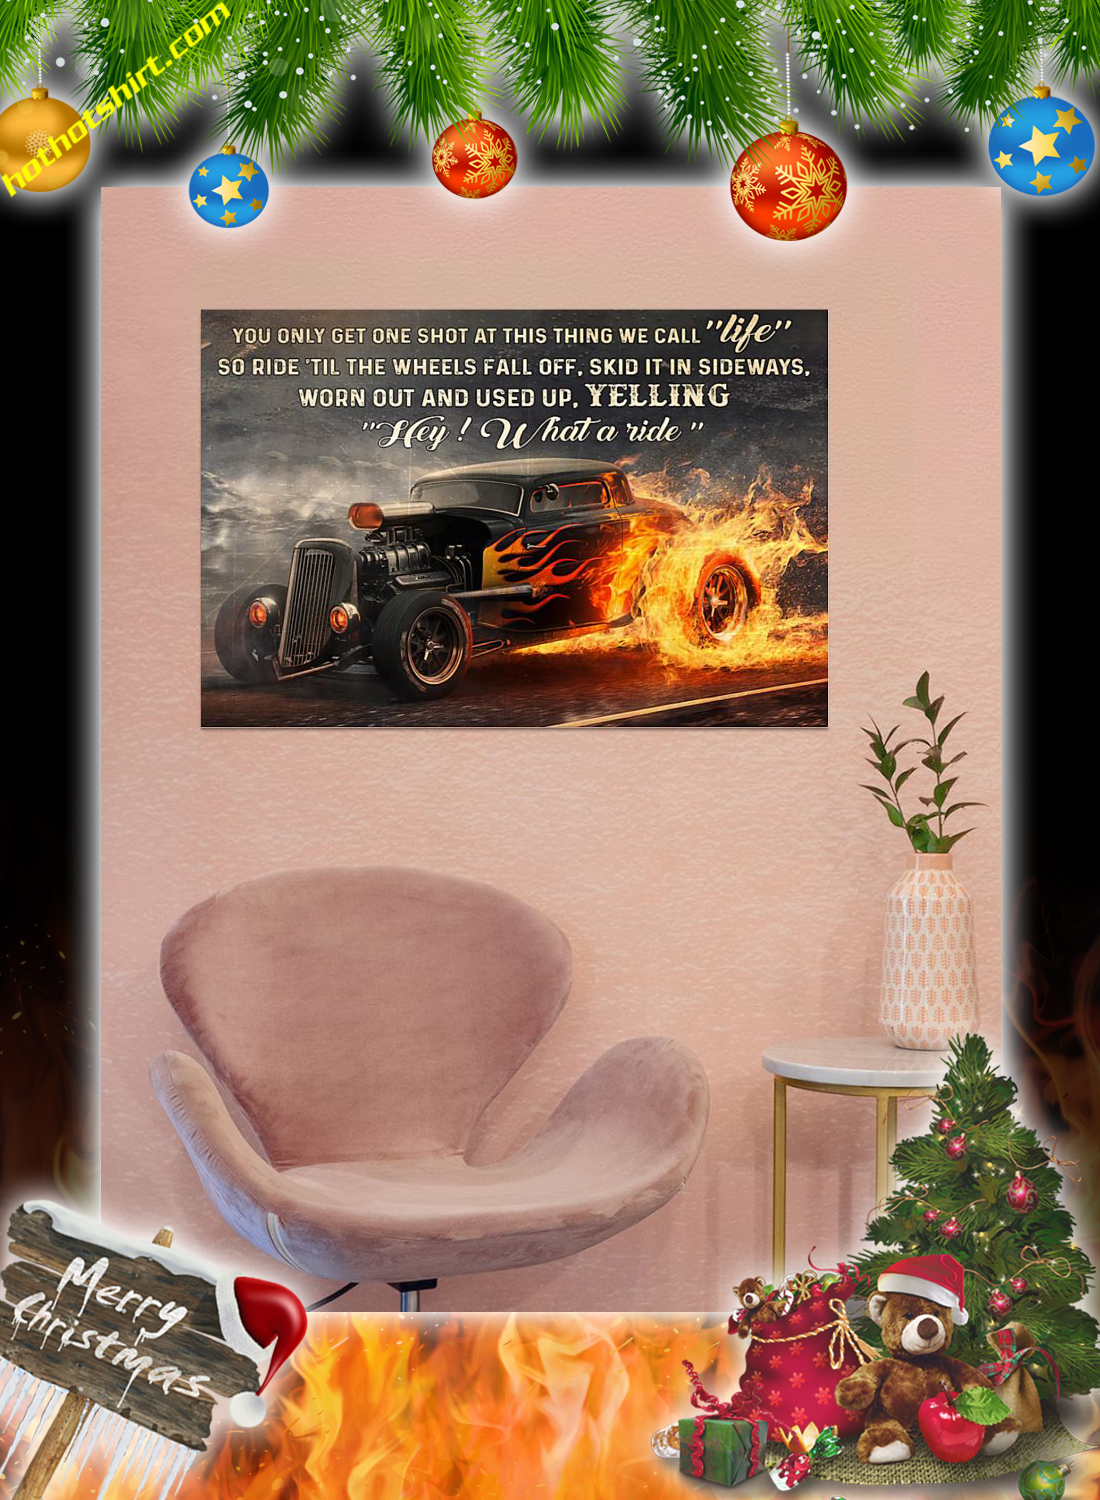 Hot rod what a ride poster 1